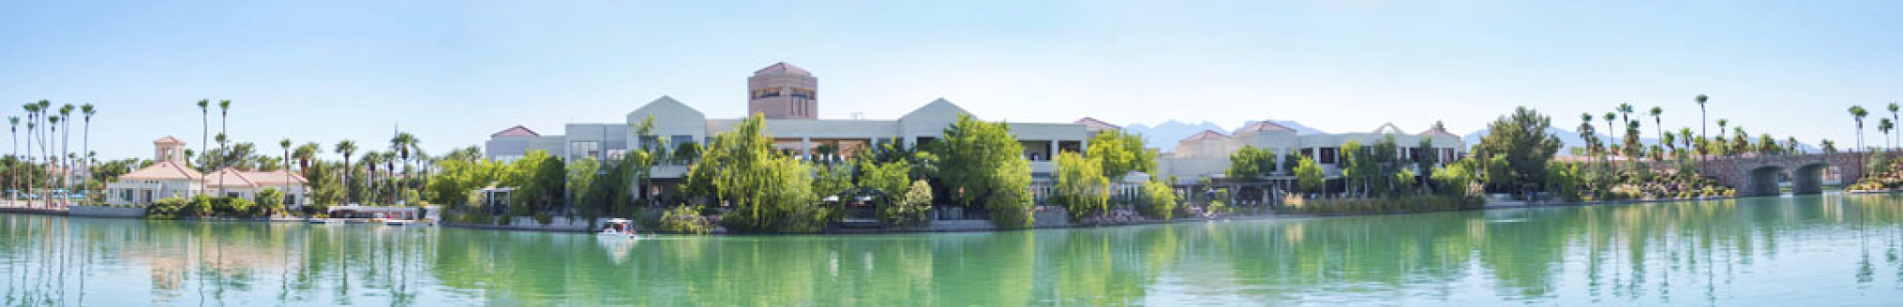 Lakeside Event Center Lake and Center Image, Desert Shores Summerlin Las Vegas